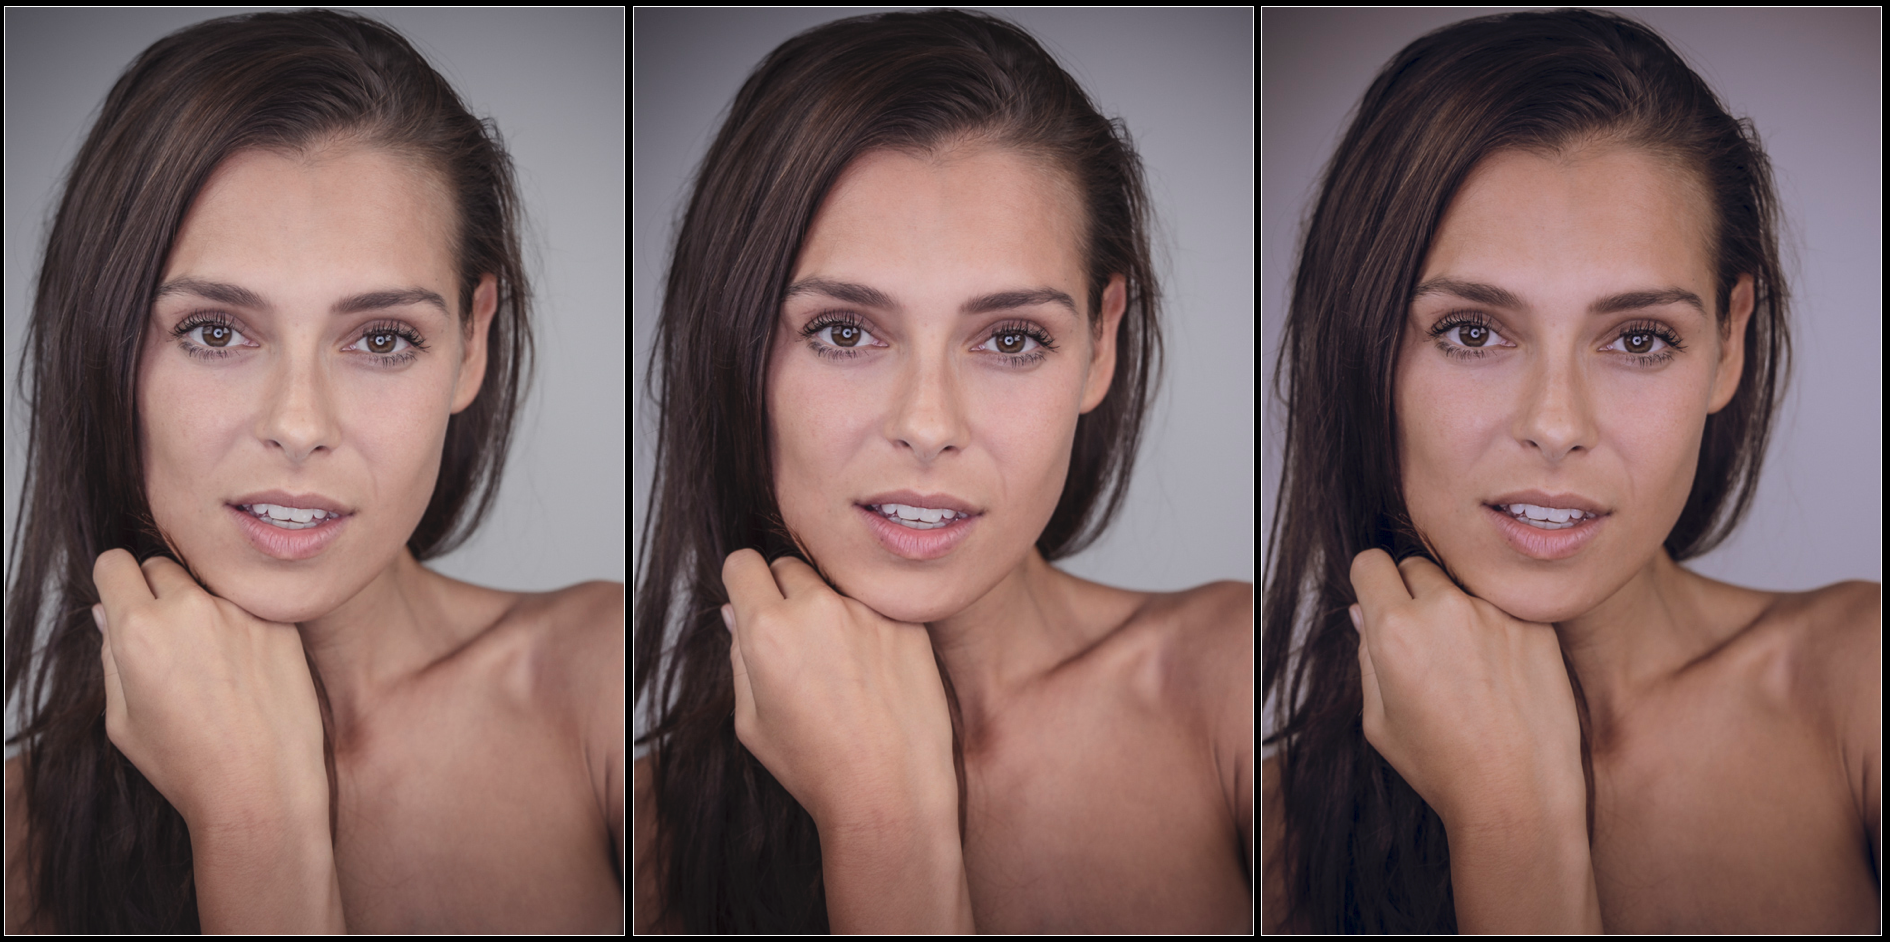 MS-beauty_Goldhaut 3 Presets